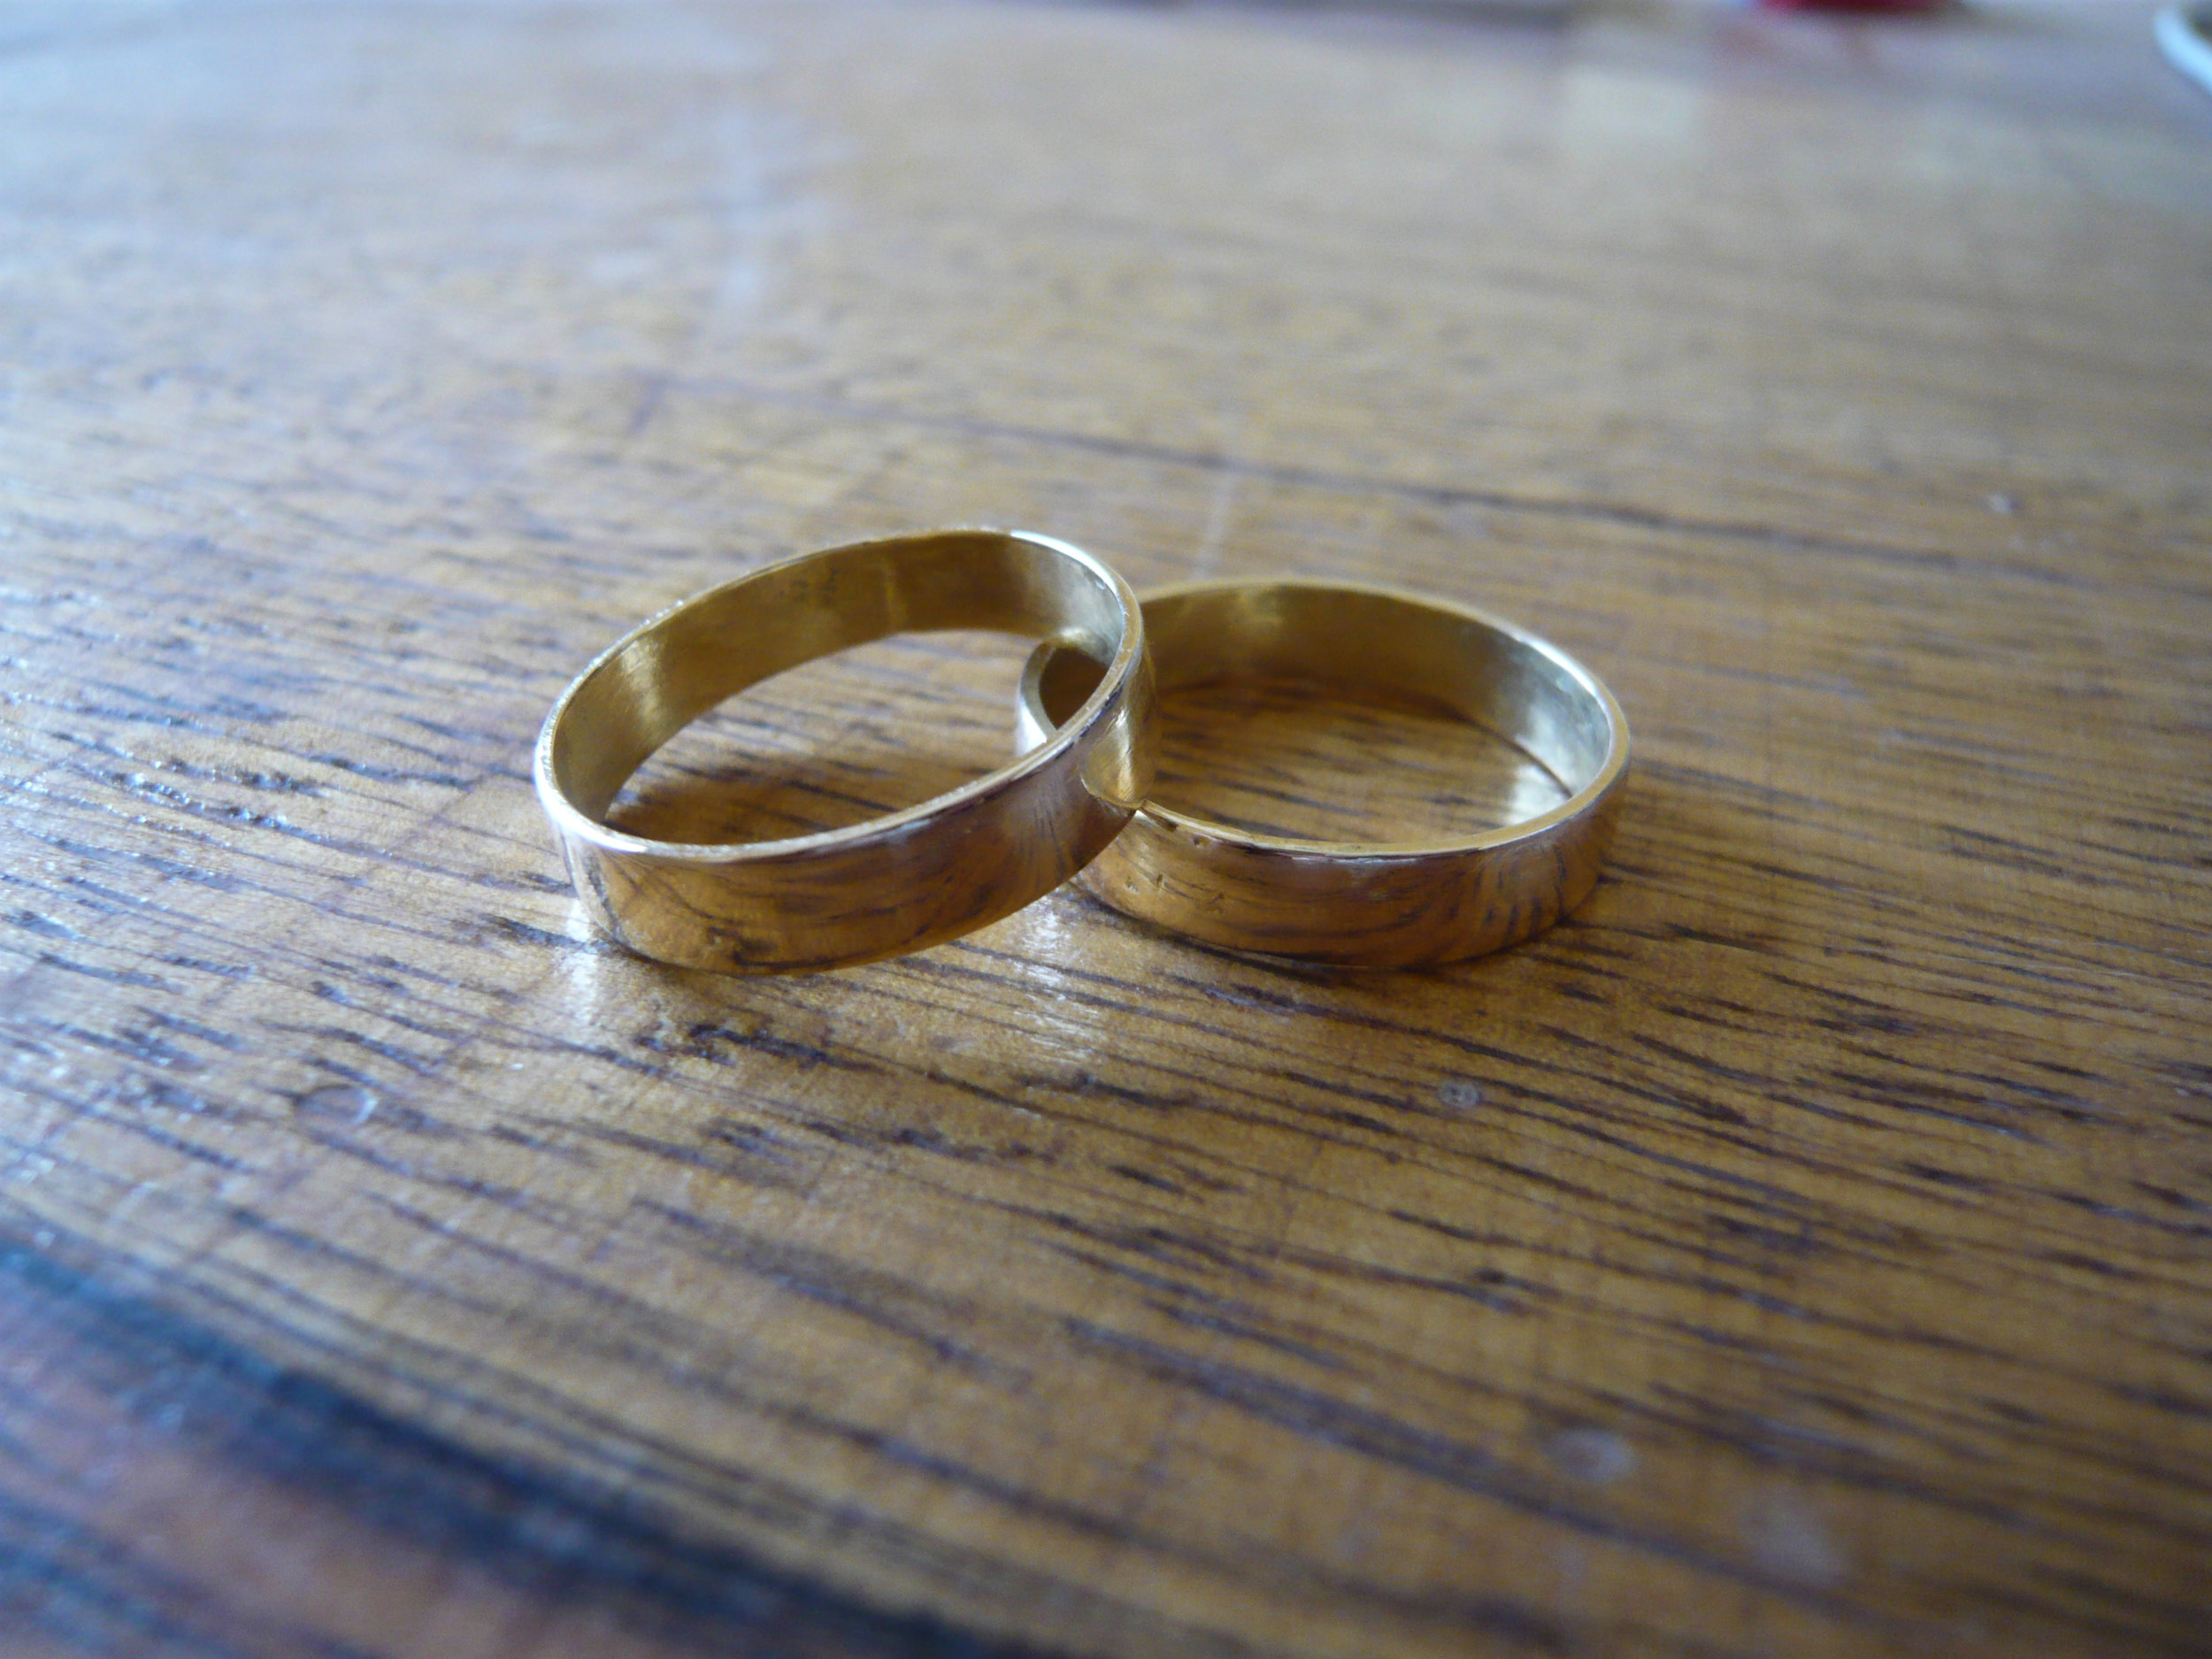 Two_golden_wedding_rings.jpg